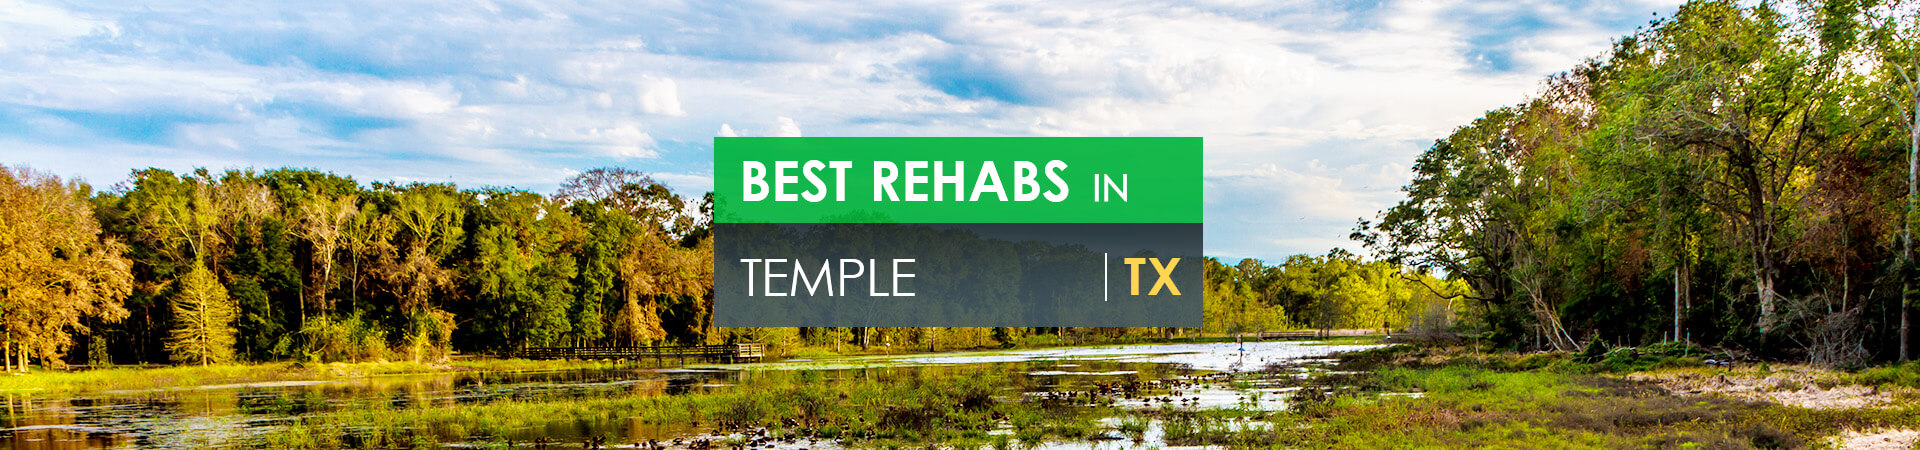 Best rehabs in Temple, TX